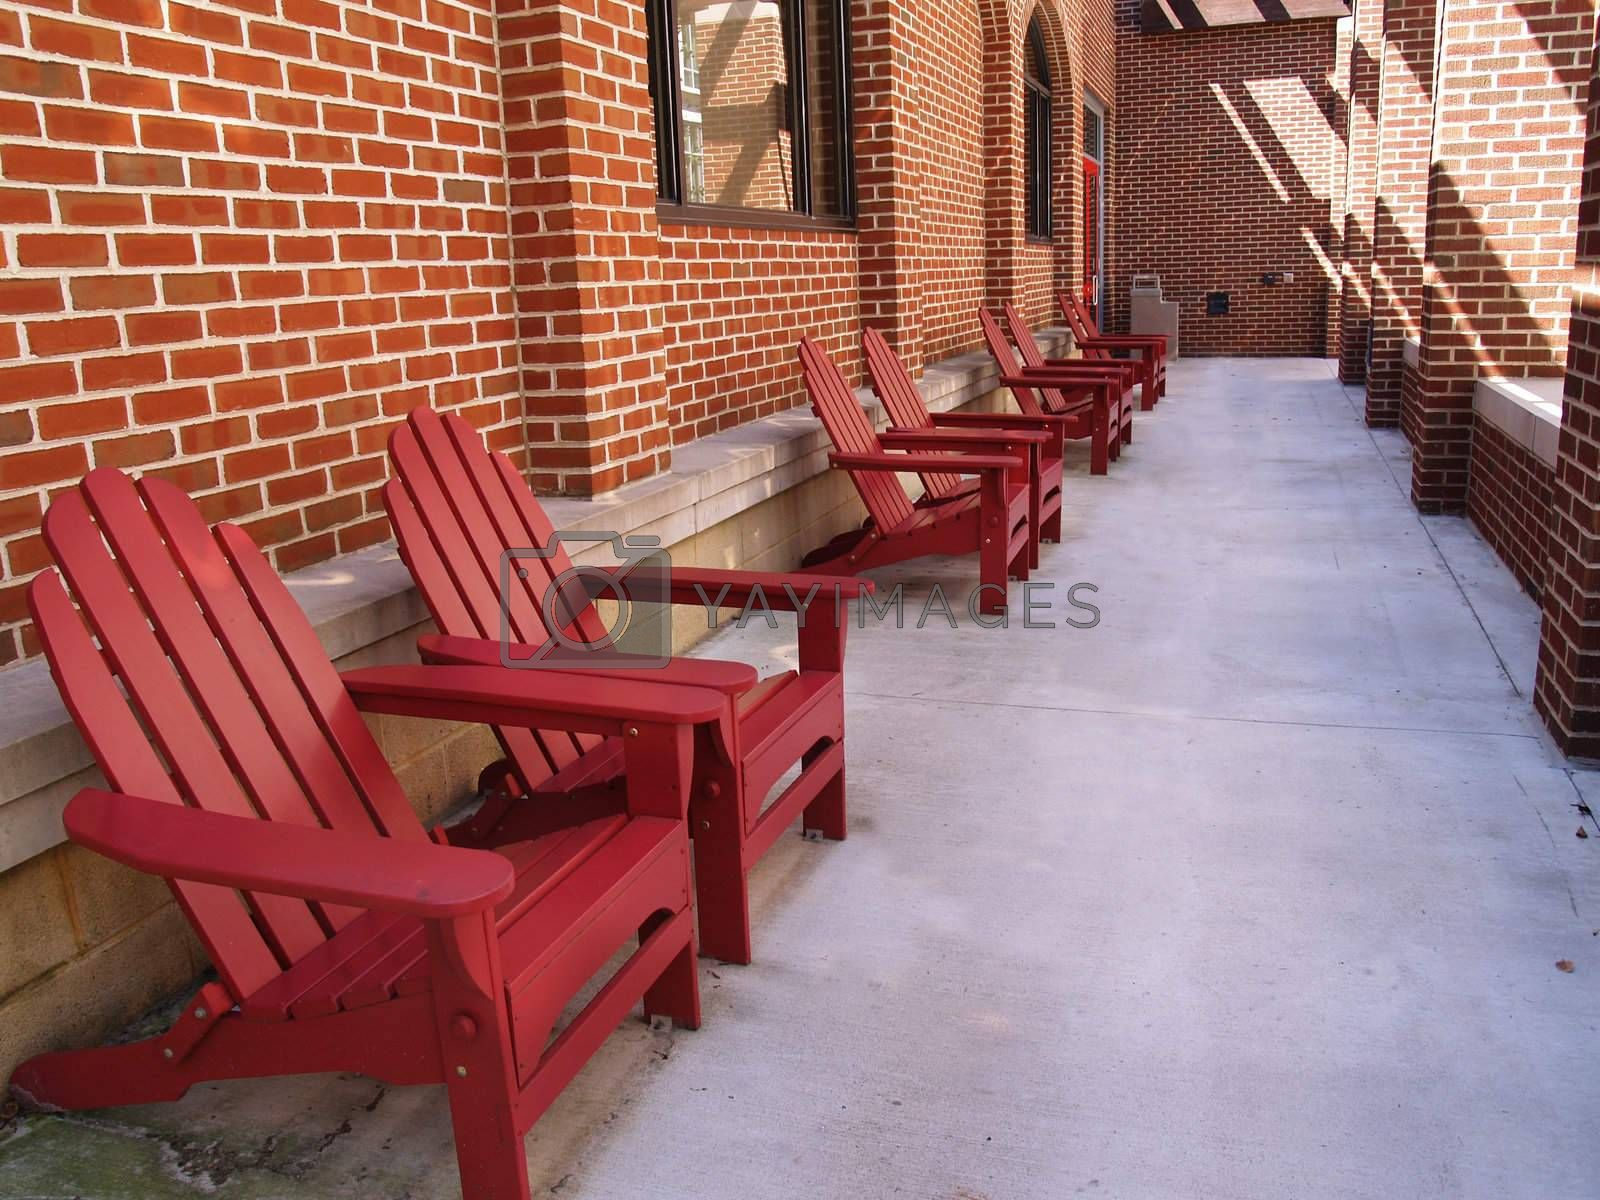 row of red adirondack chairs by a brick building